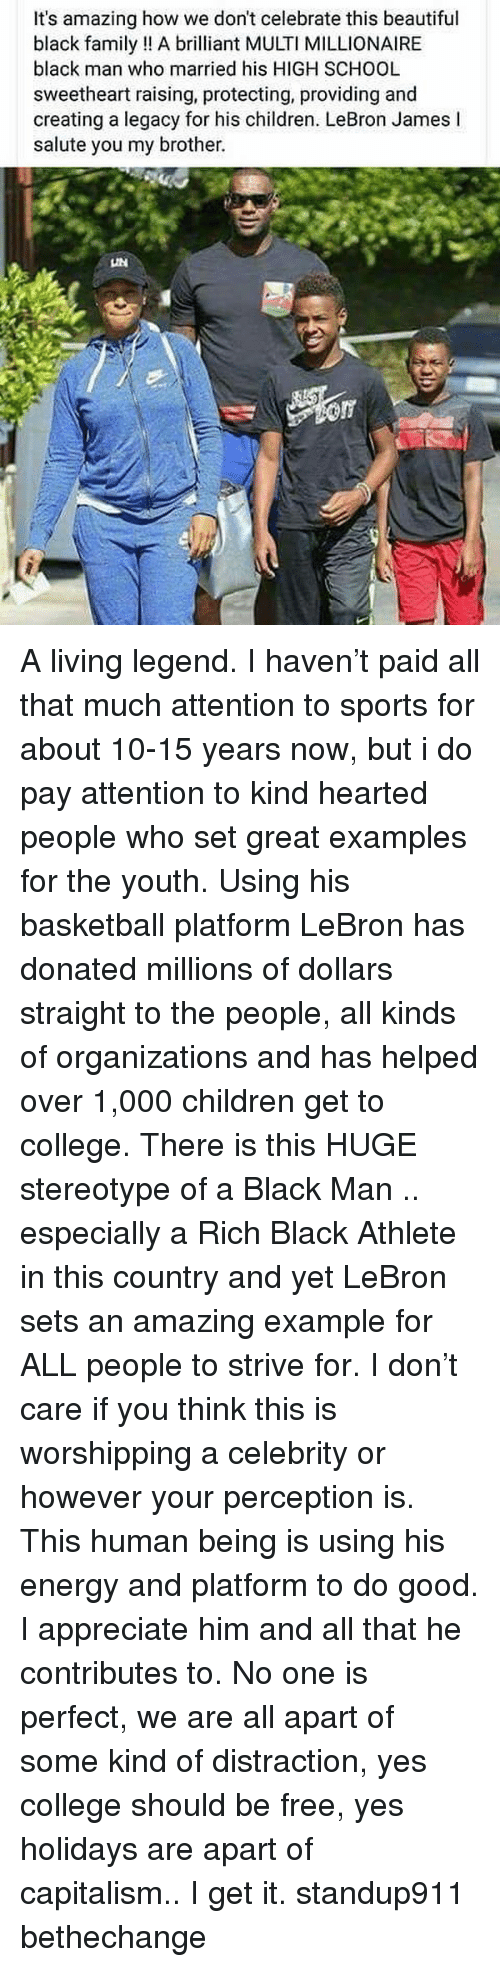 Basketball, Beautiful, and Children: It's amazing how we don't celebrate this beautiful  black family! A briliant MULTI MILLIONAIRE  black man who married his HIGH SCHOOL  sweetheart raising, protecting, providing and  creating a legacy for his children. LeBron James l  salute you my brother. A living legend. I haven't paid all that much attention to sports for about 10-15 years now, but i do pay attention to kind hearted people who set great examples for the youth. Using his basketball platform LeBron has donated millions of dollars straight to the people, all kinds of organizations and has helped over 1,000 children get to college. There is this HUGE stereotype of a Black Man .. especially a Rich Black Athlete in this country and yet LeBron sets an amazing example for ALL people to strive for. I don't care if you think this is worshipping a celebrity or however your perception is. This human being is using his energy and platform to do good. I appreciate him and all that he contributes to. No one is perfect, we are all apart of some kind of distraction, yes college should be free, yes holidays are apart of capitalism.. I get it. standup911 bethechange